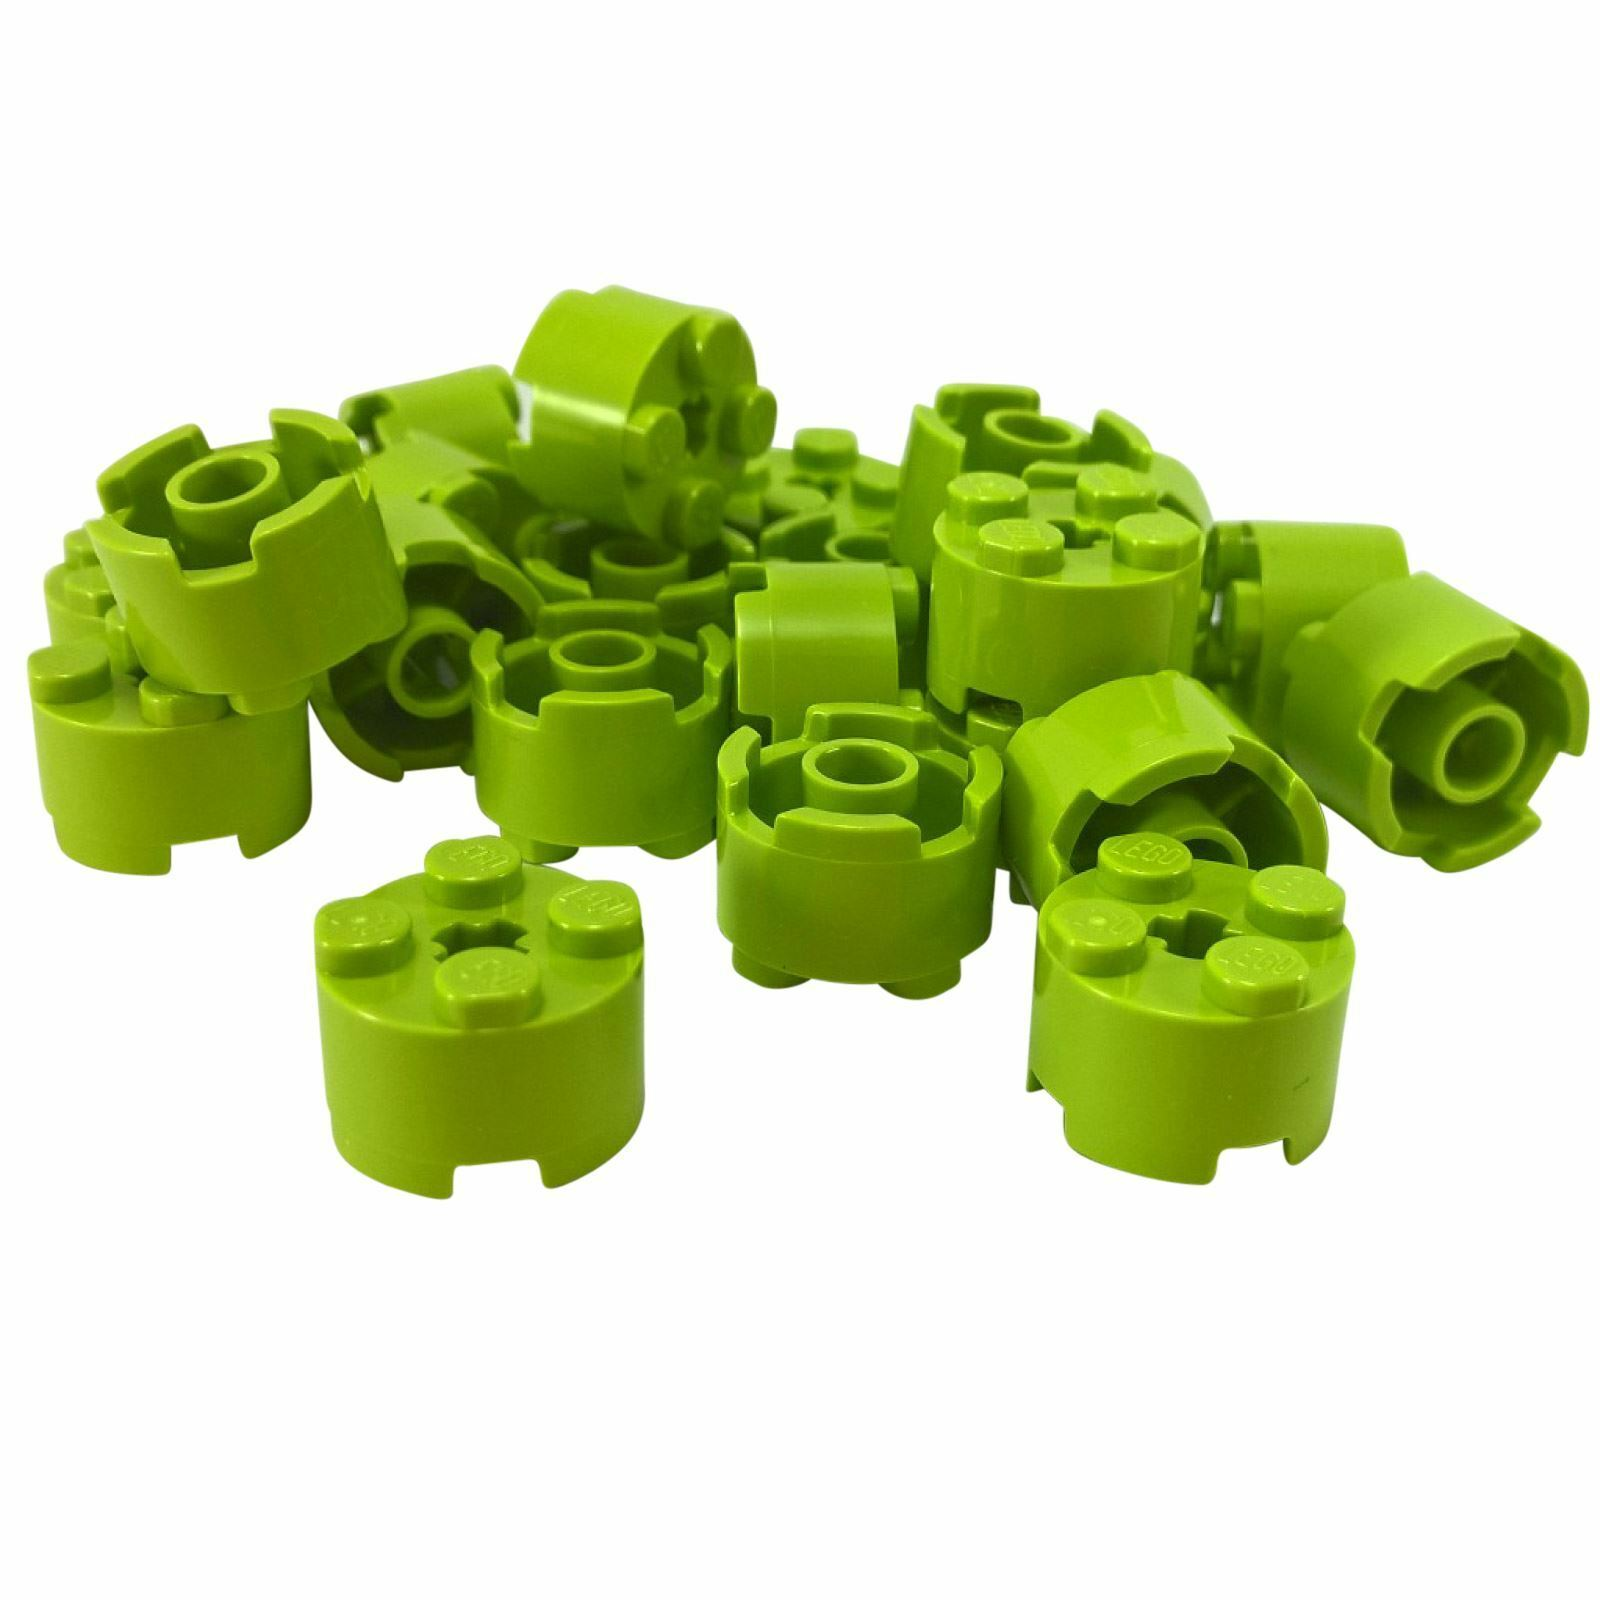 LEGO 4032 ROUND PLATE 2x2 AXLE HOLE GREEN QTY x 15 BRAND NEW